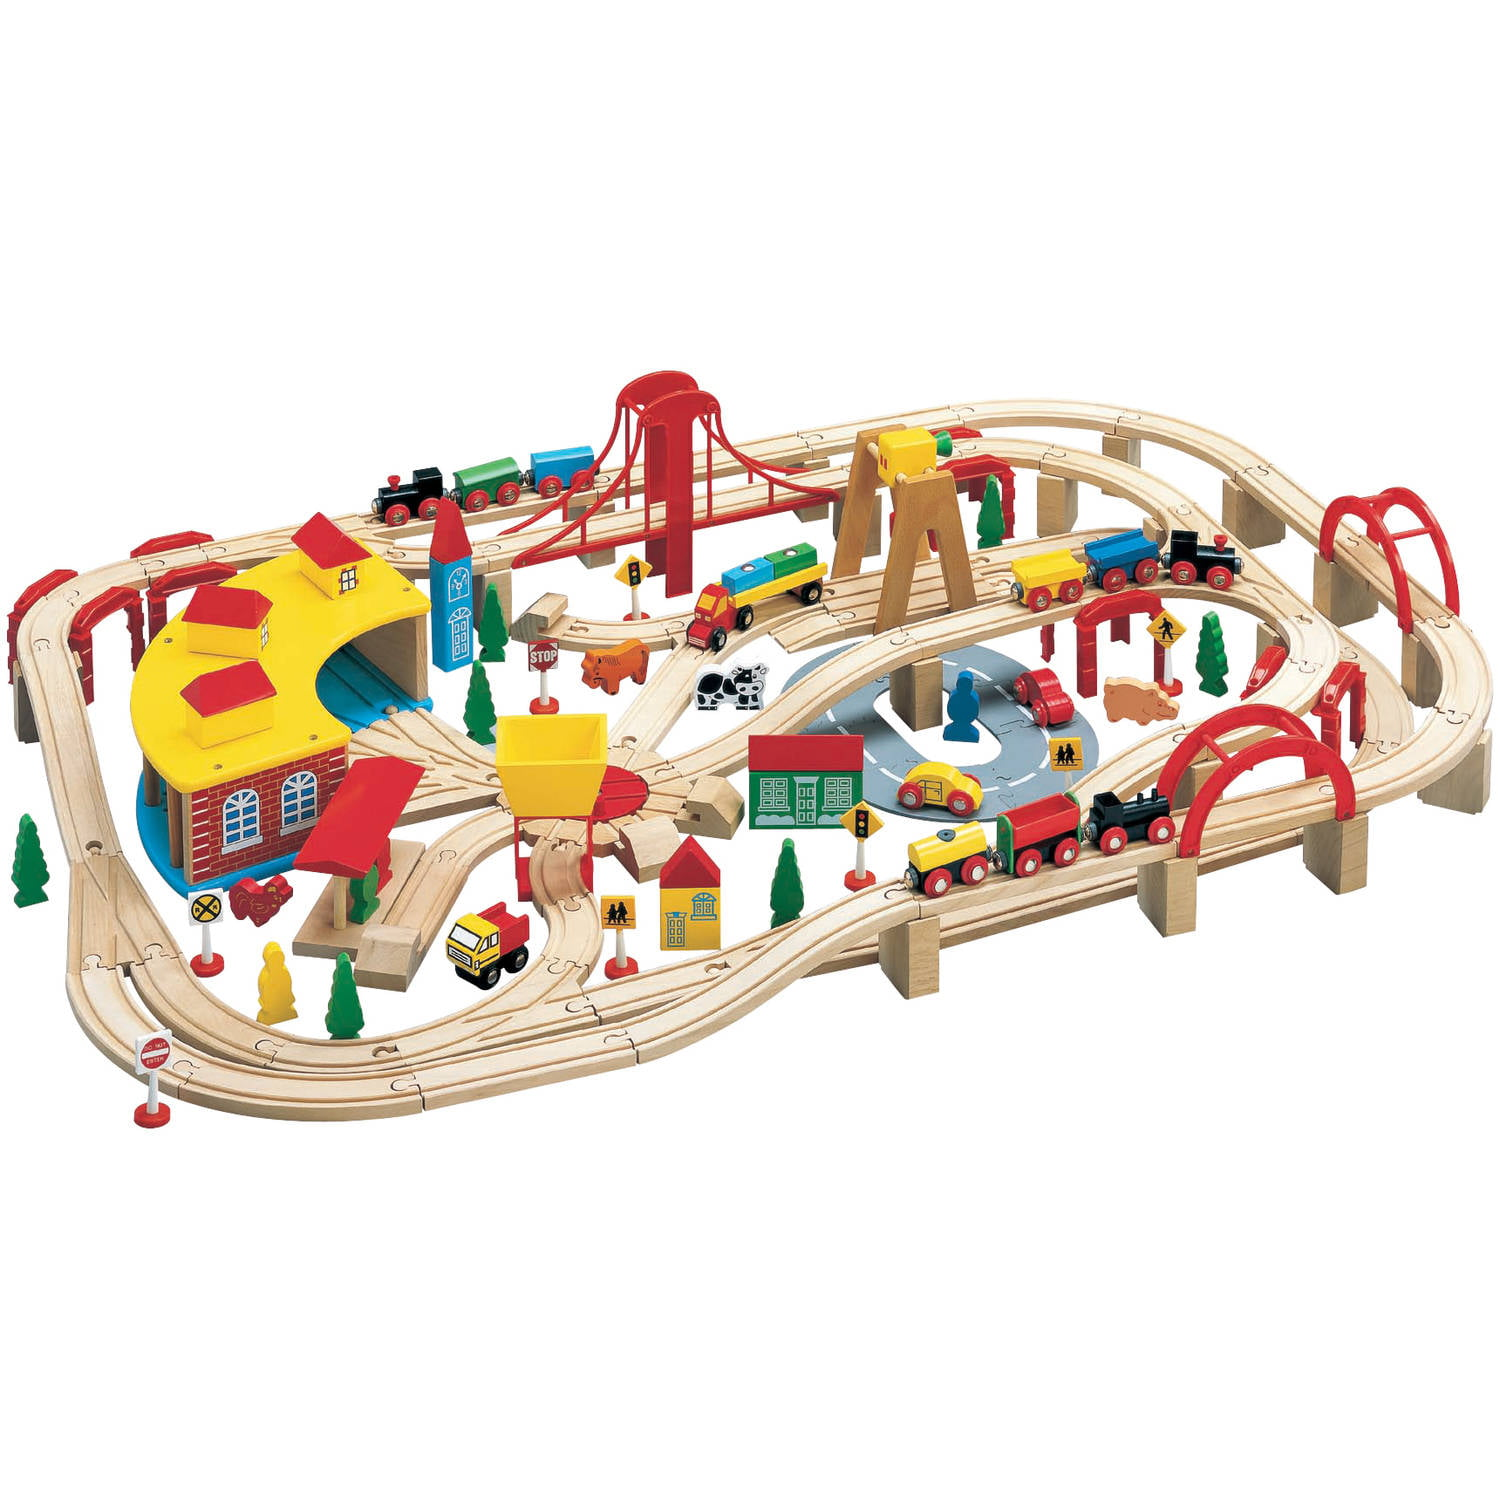 Wooden Train Play Set 145 Piece Walmart Com